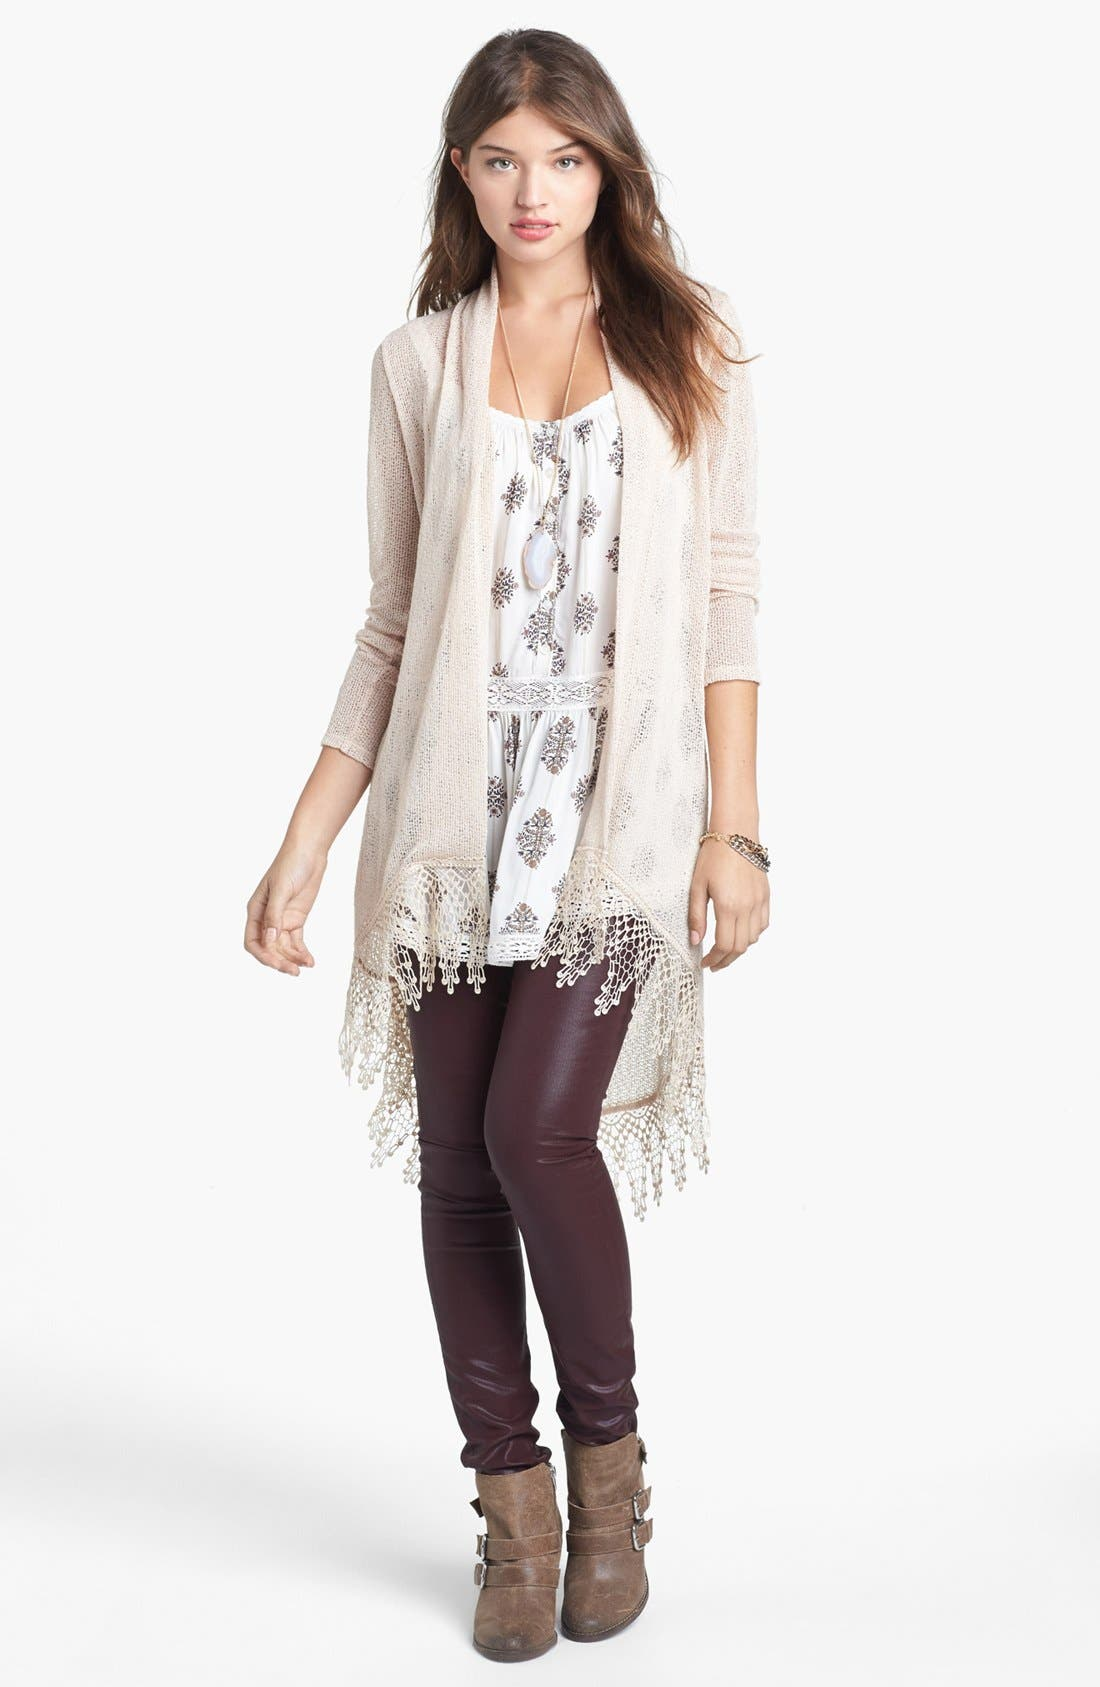 Alternate Image 1 Selected - Painted Threads Crochet High/Low Cardigan (Juniors)